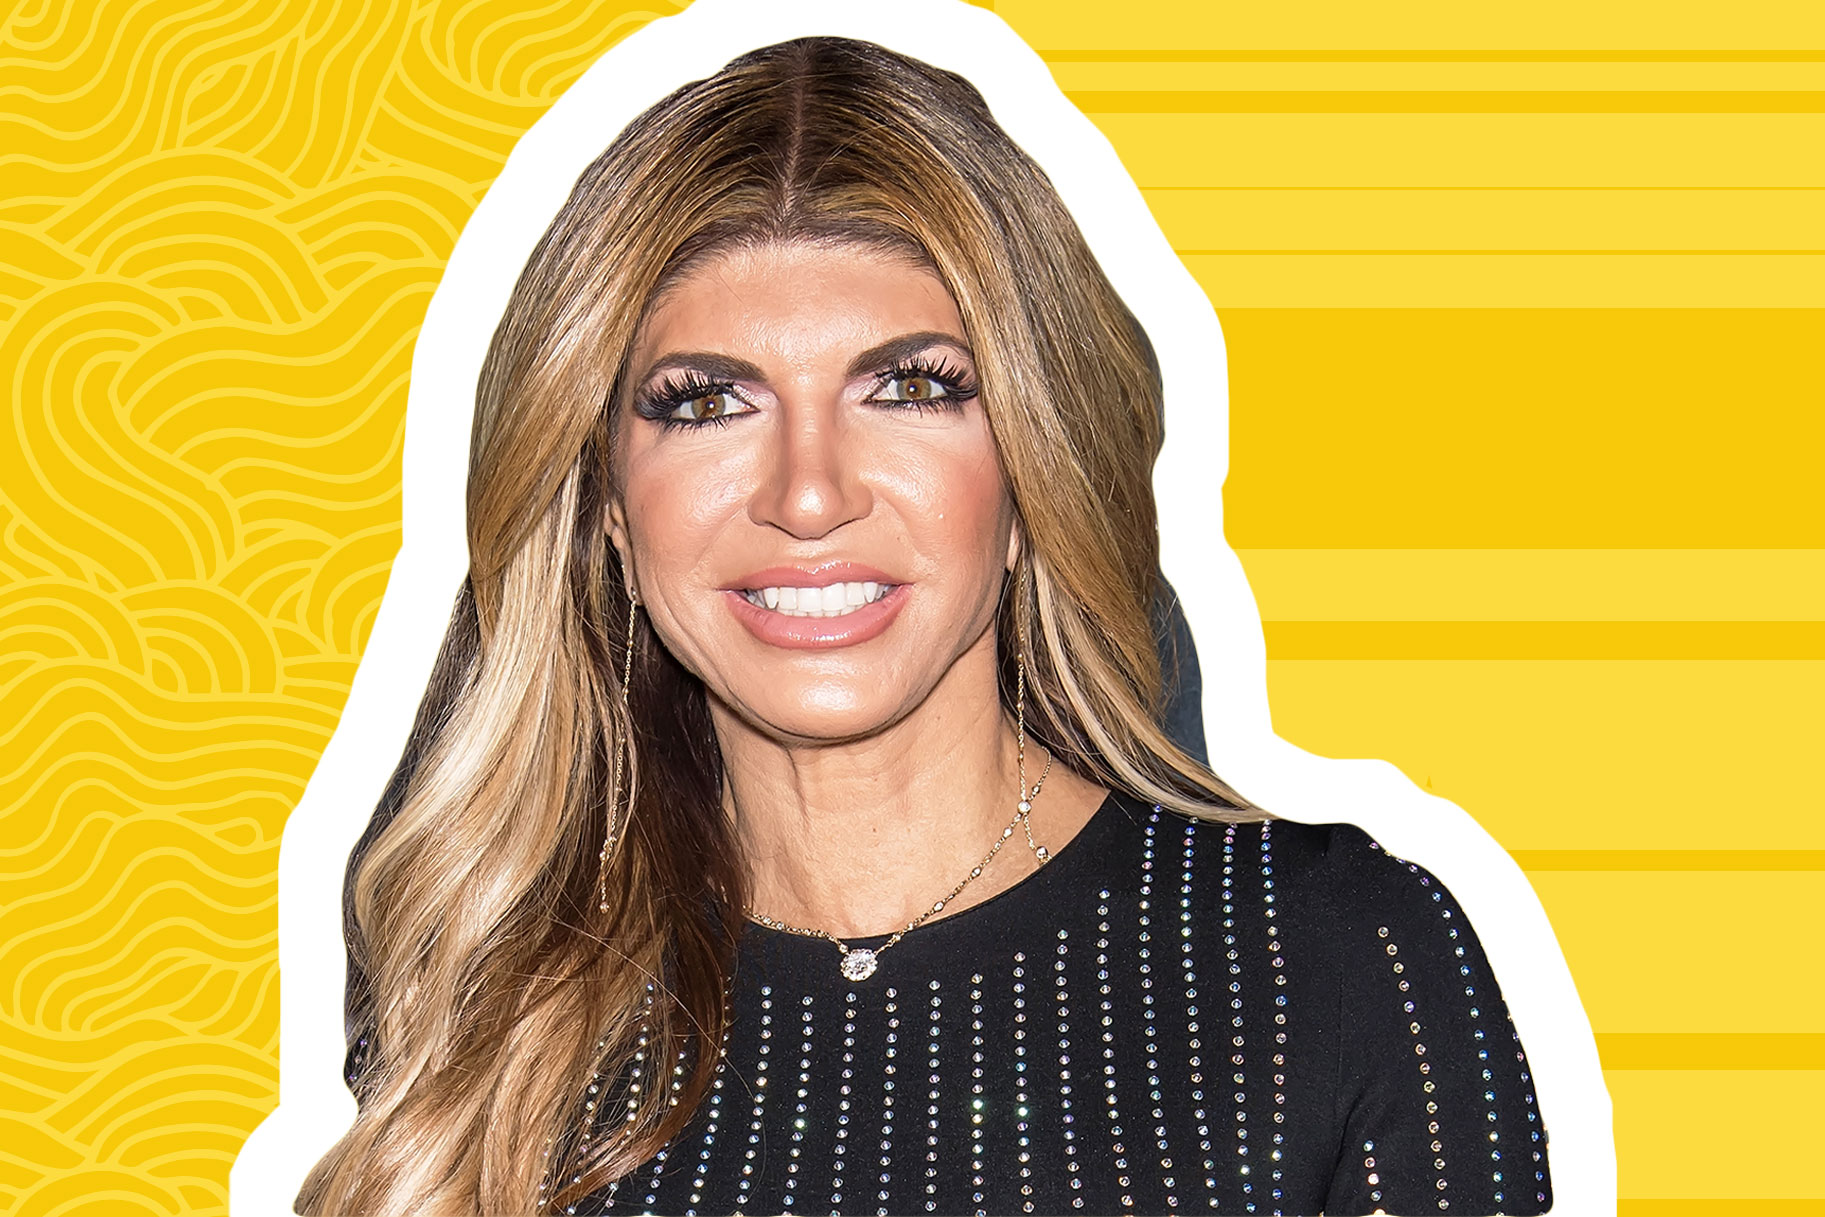 teresa-giudice-made-to-choose-sides-after-melissa-gorga-and-jennifer-aydins-explosive-fight